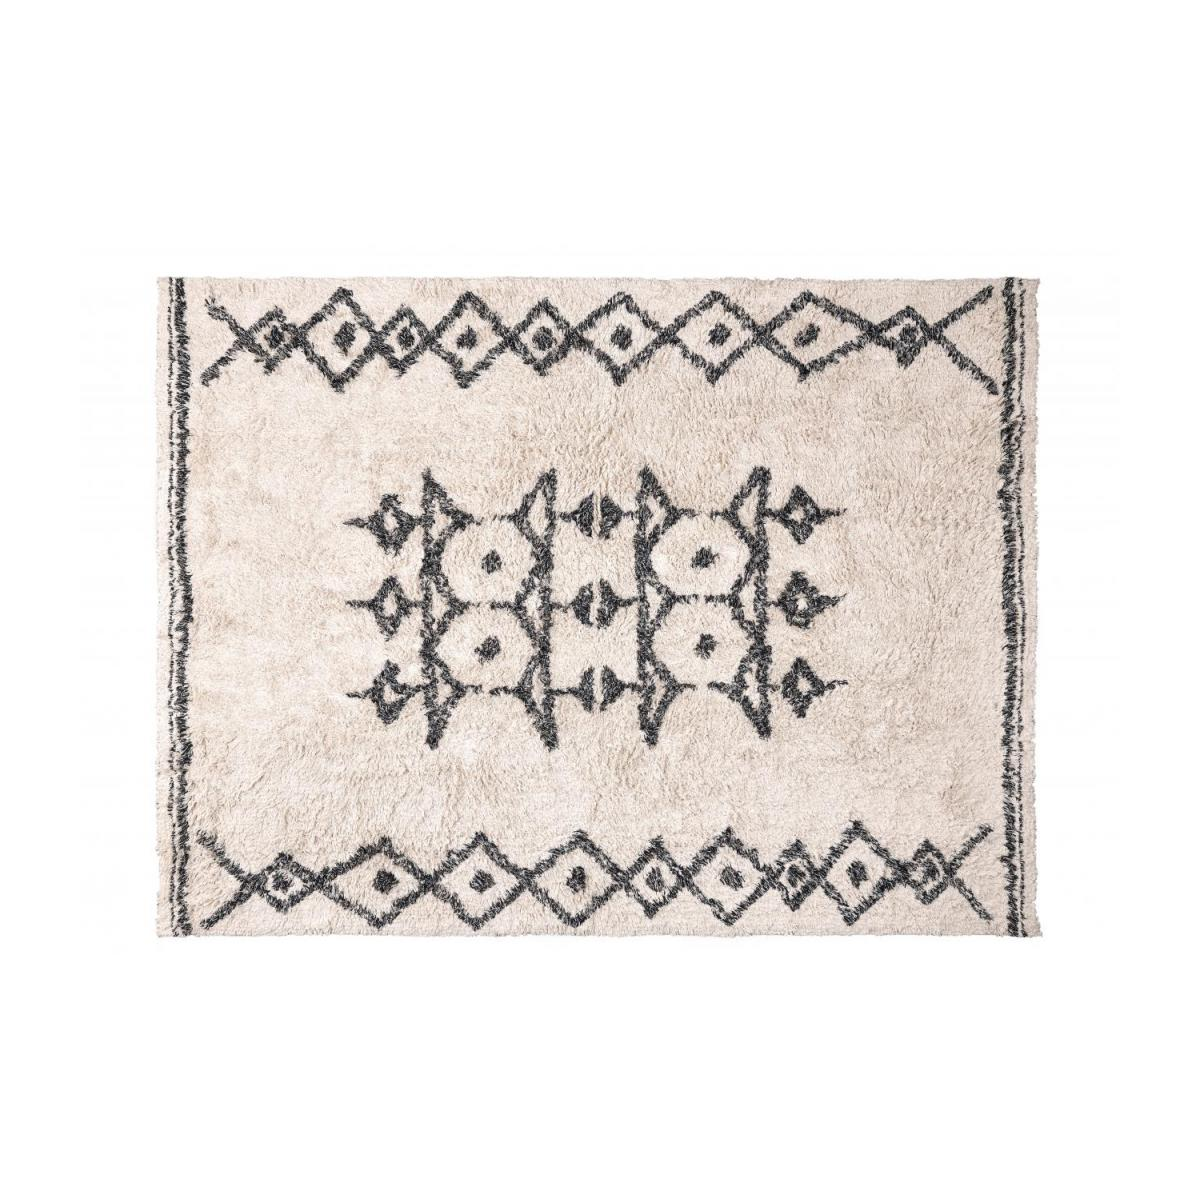 Berber Style Tufted Cotton Rug Black and White 170x240cm n°1